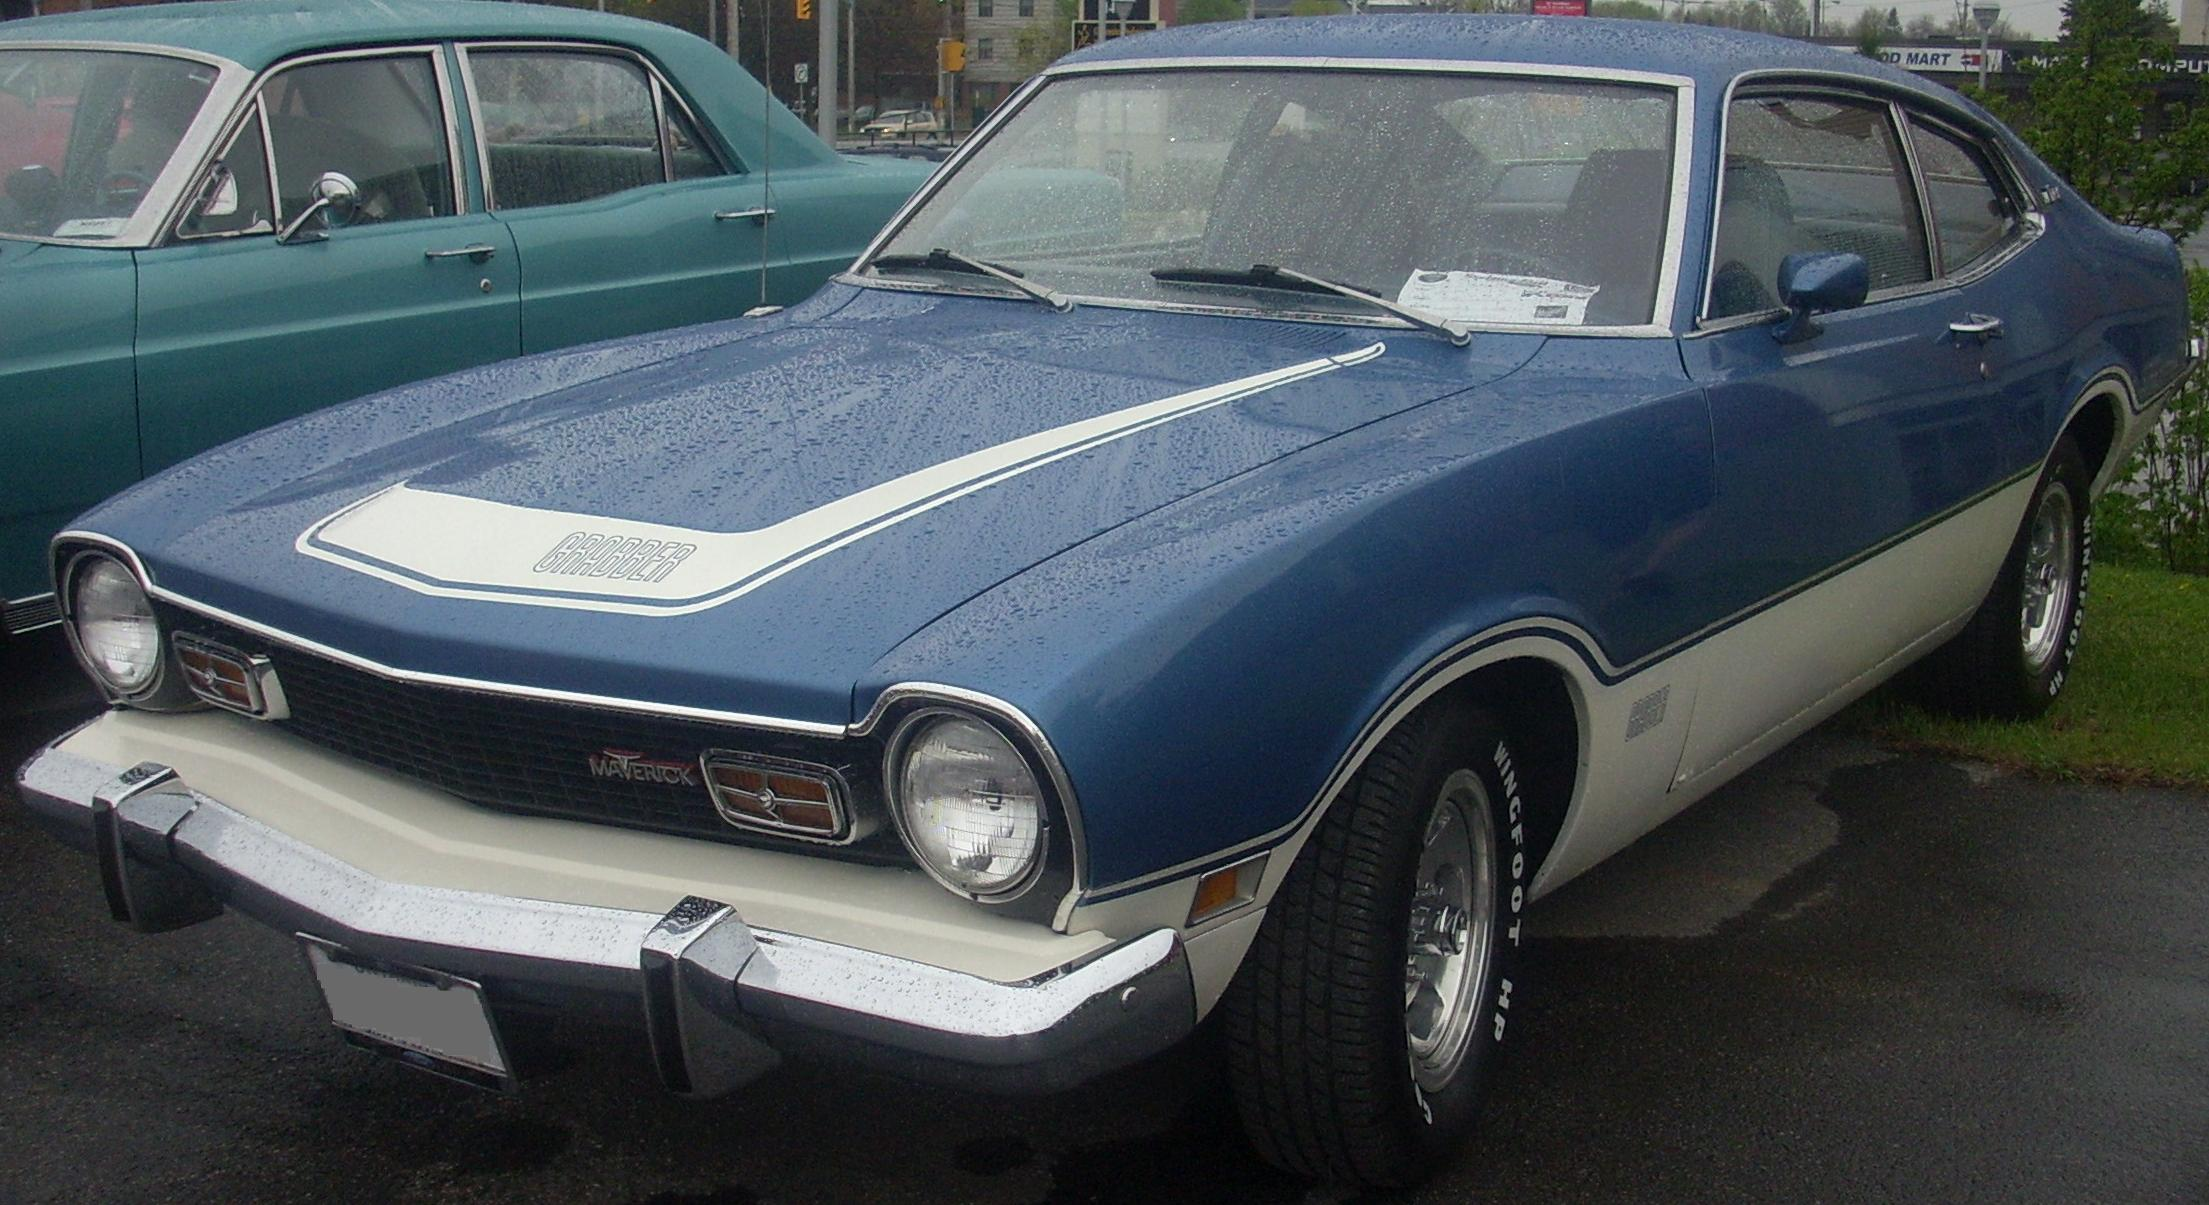 ford maverick americas wikipedia rh en wikipedia org Mercury Comet ford maverick buyers guide